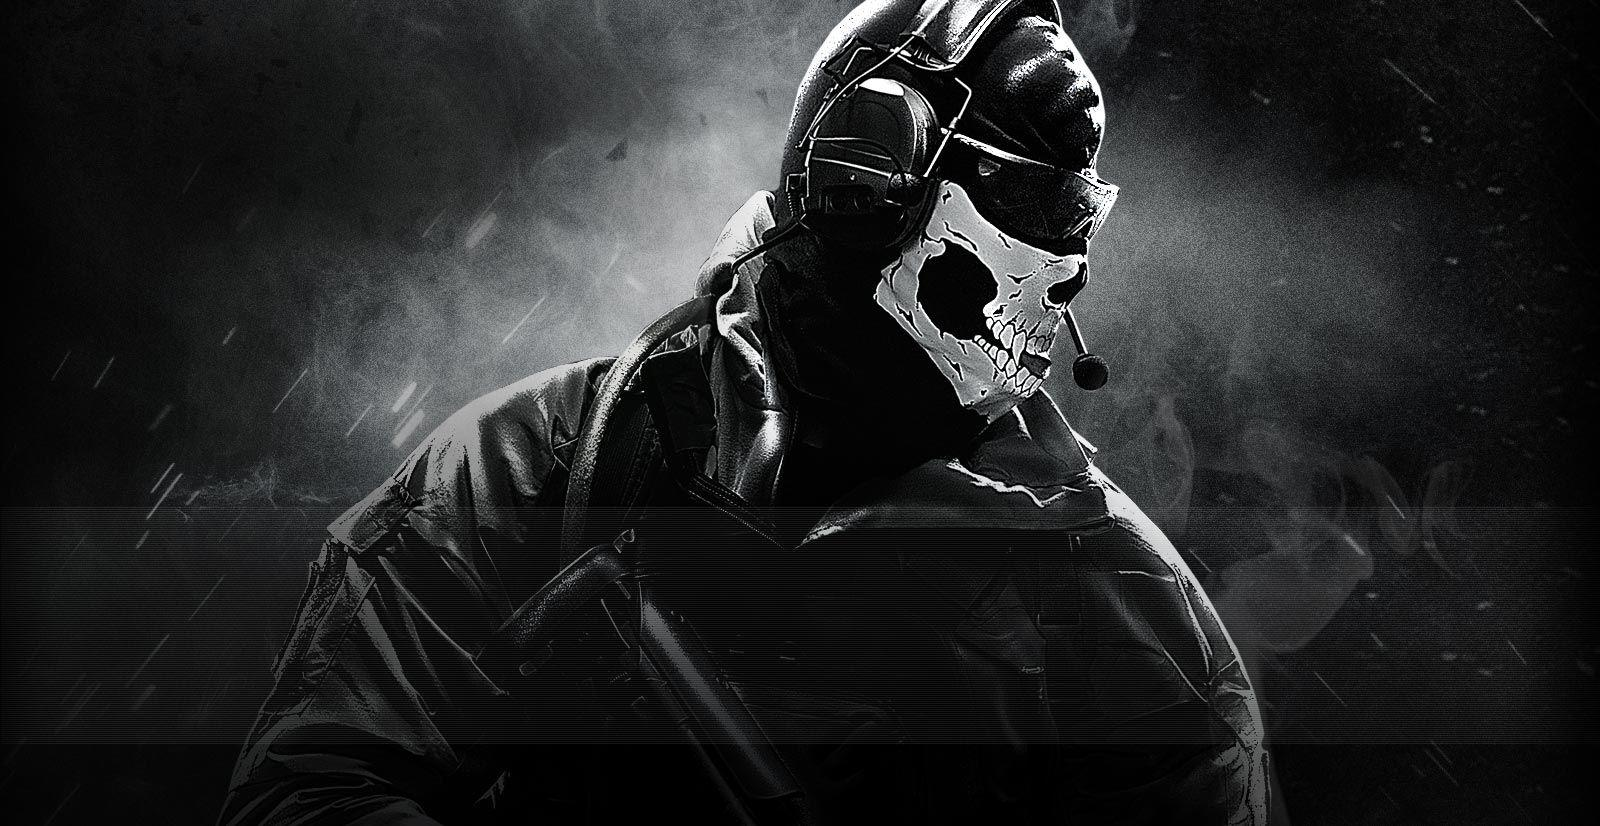 Call of Duty Wallpapers ~ GameHDWall.com - HD Video Games Wallpapers